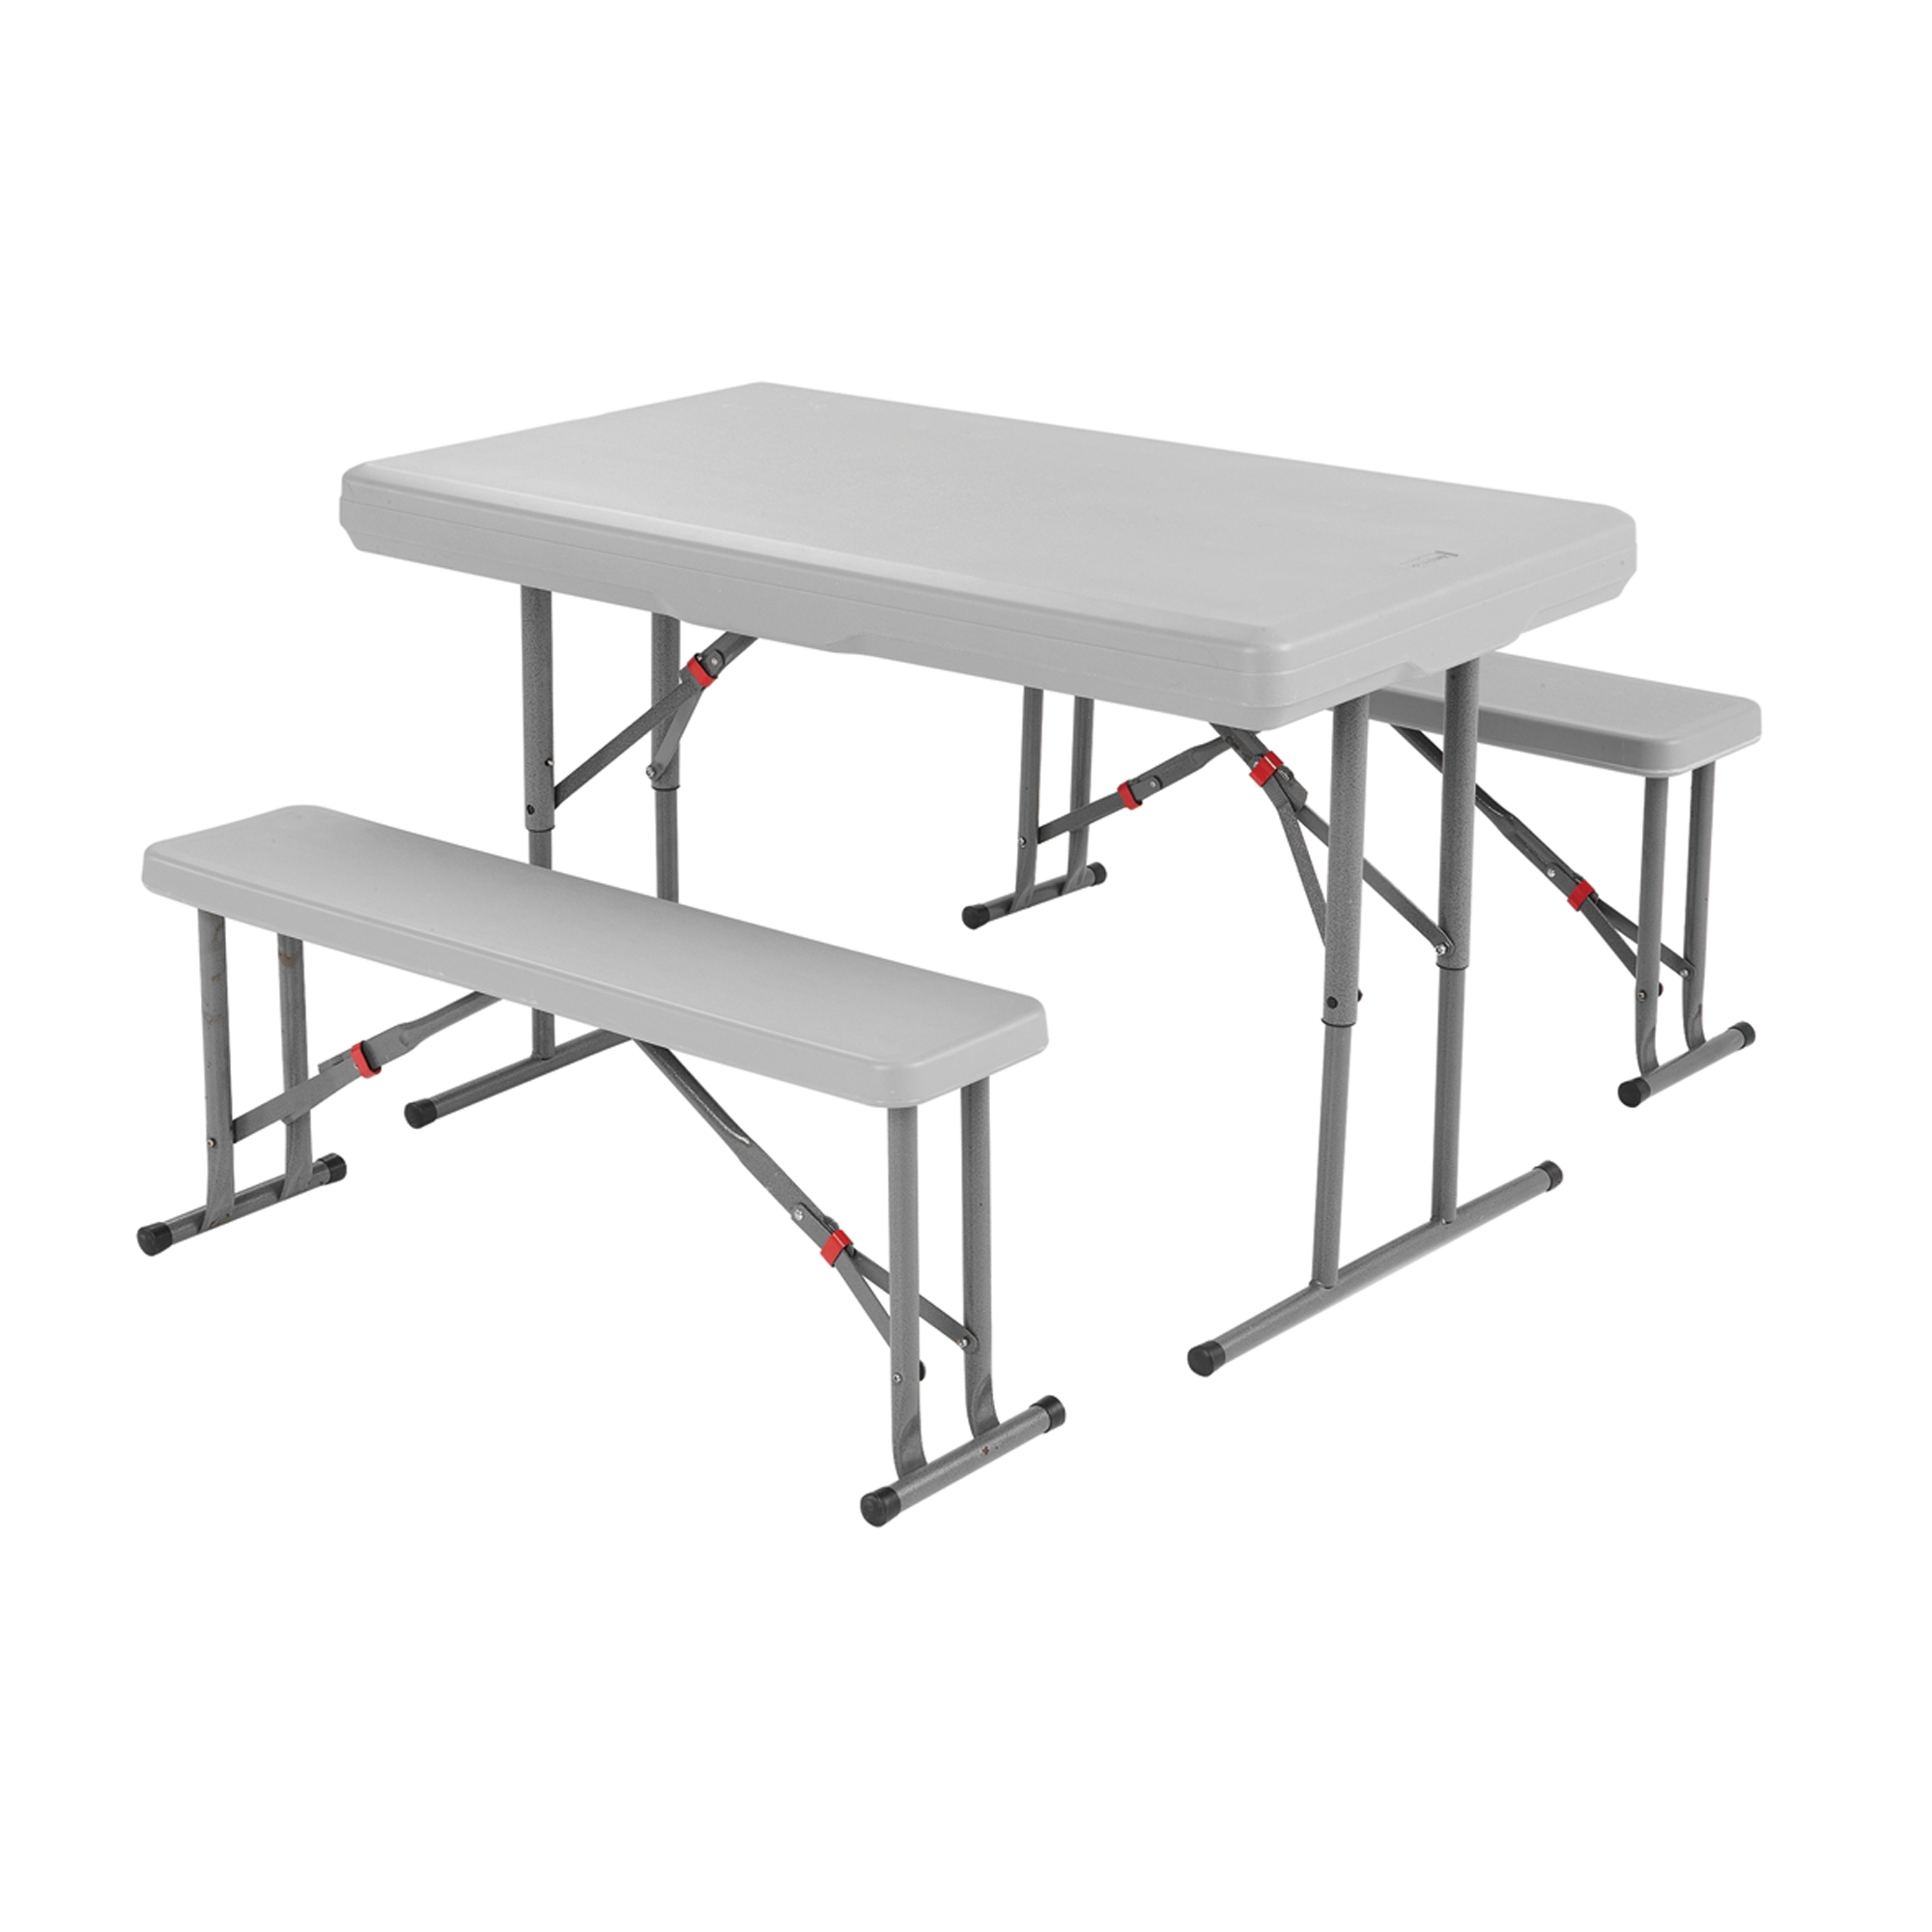 Cabana Table & Benches - Grey